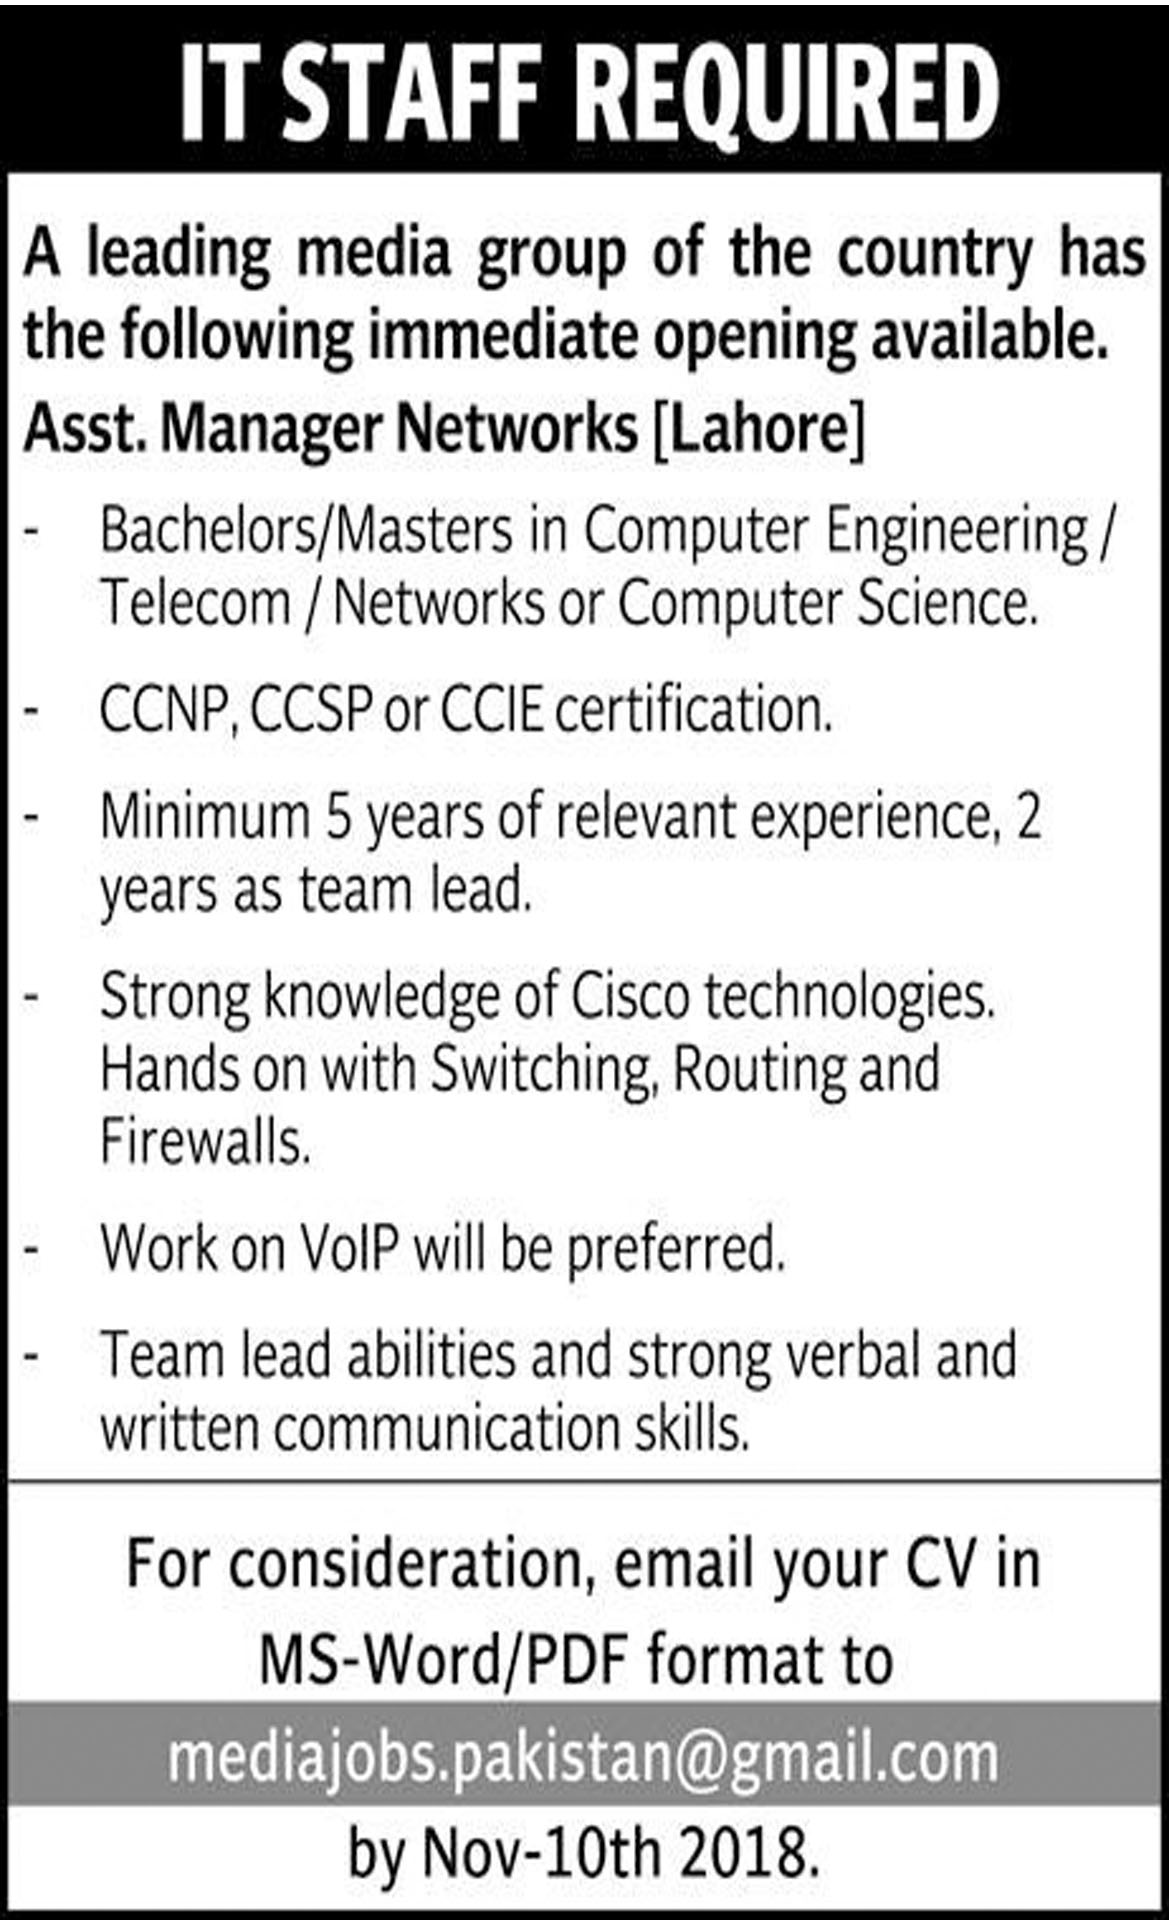 Jobs In IT Staff Required In Lahore 06 Nov 2018